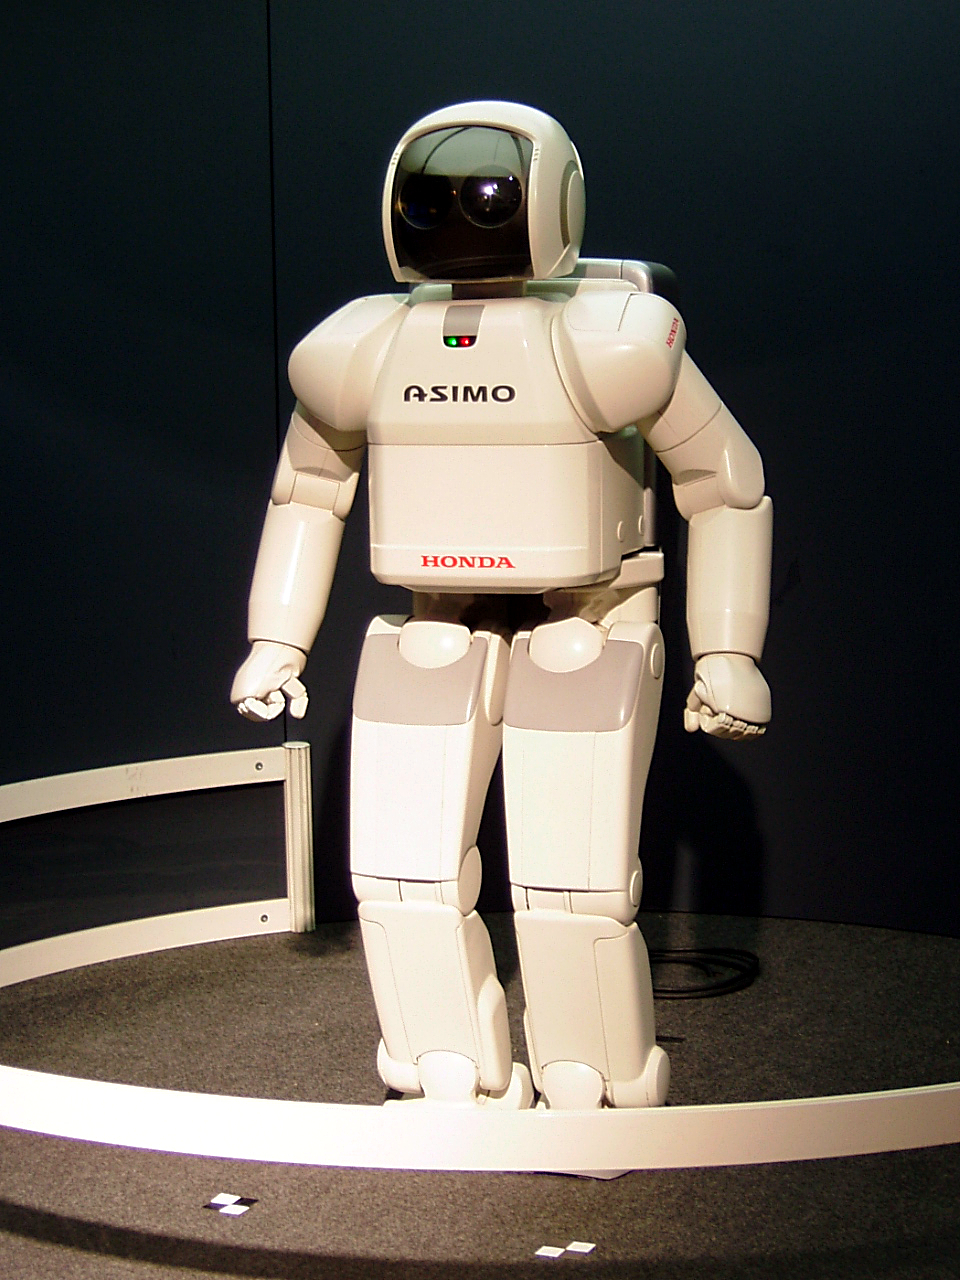 One of the first human-like robots, ASIMO from Honda